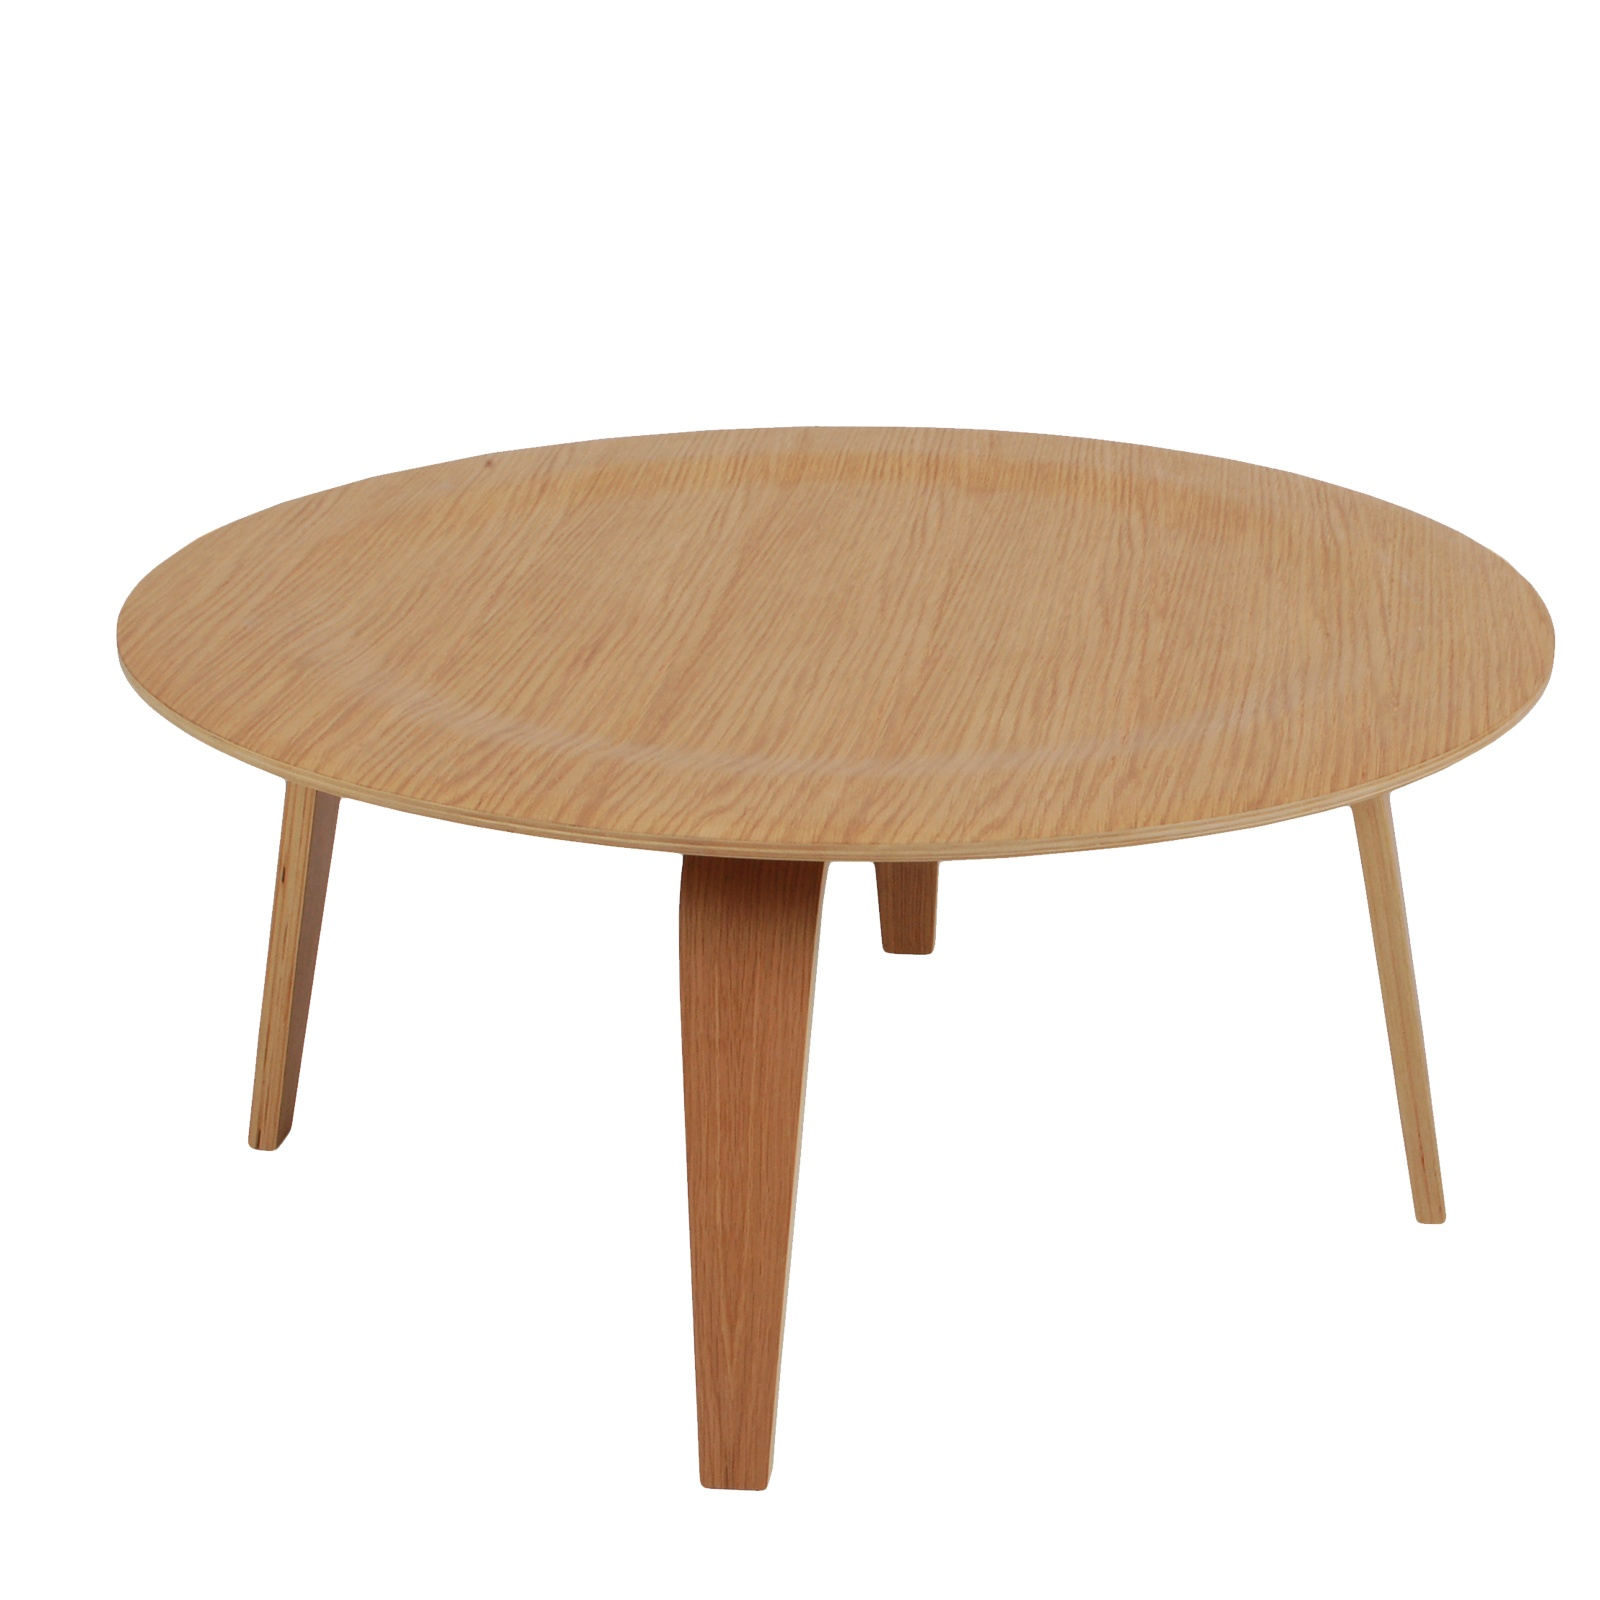 Eames Molded Plywood Table For Rent Furniture Rentals Formdecor